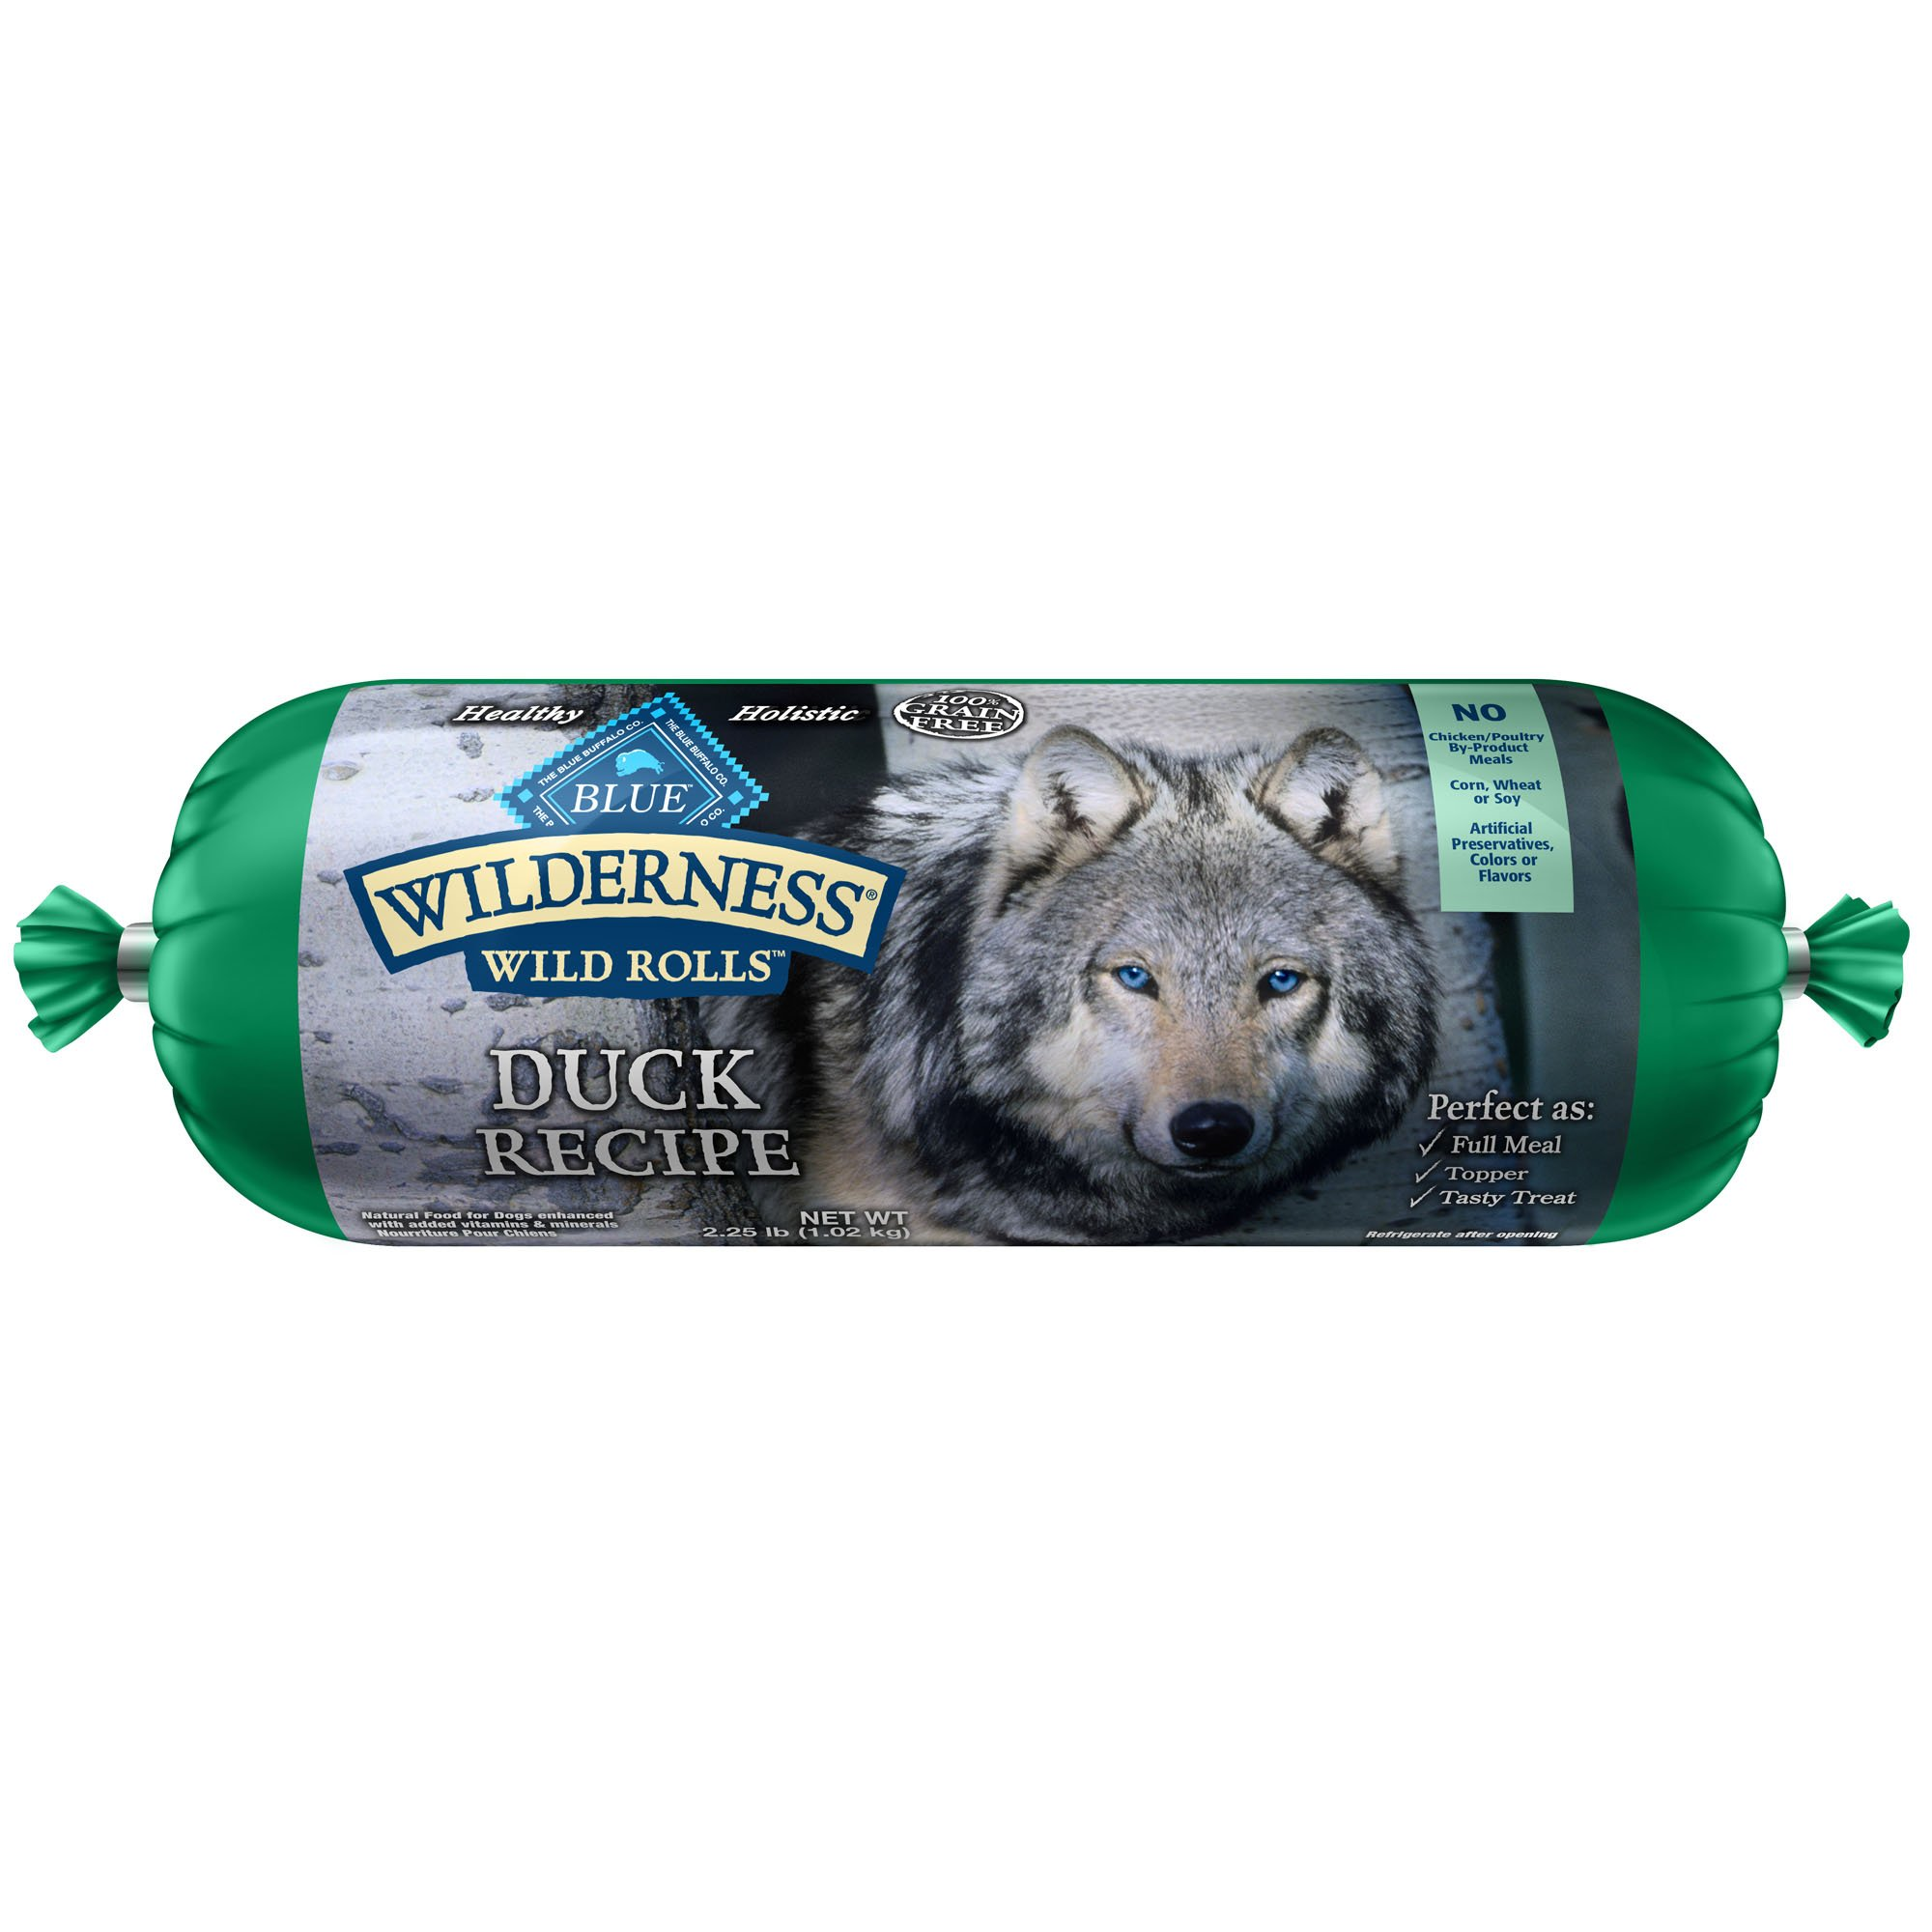 Blue Buffalo Wilderness Wild Roll Duck Recipe Dog Food